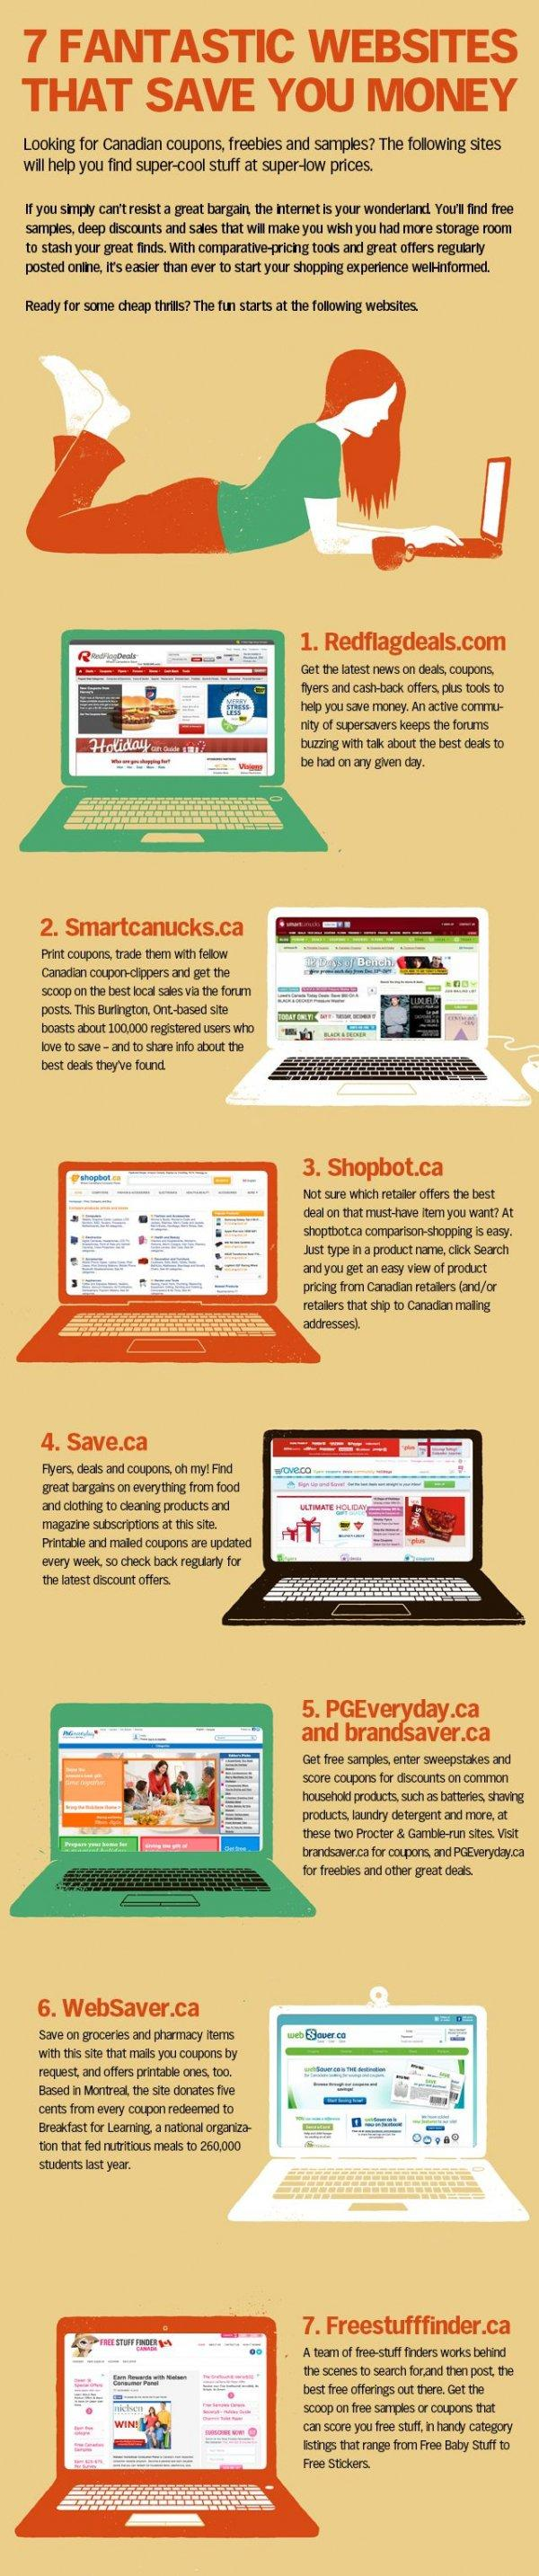 7 Website That Save You Money